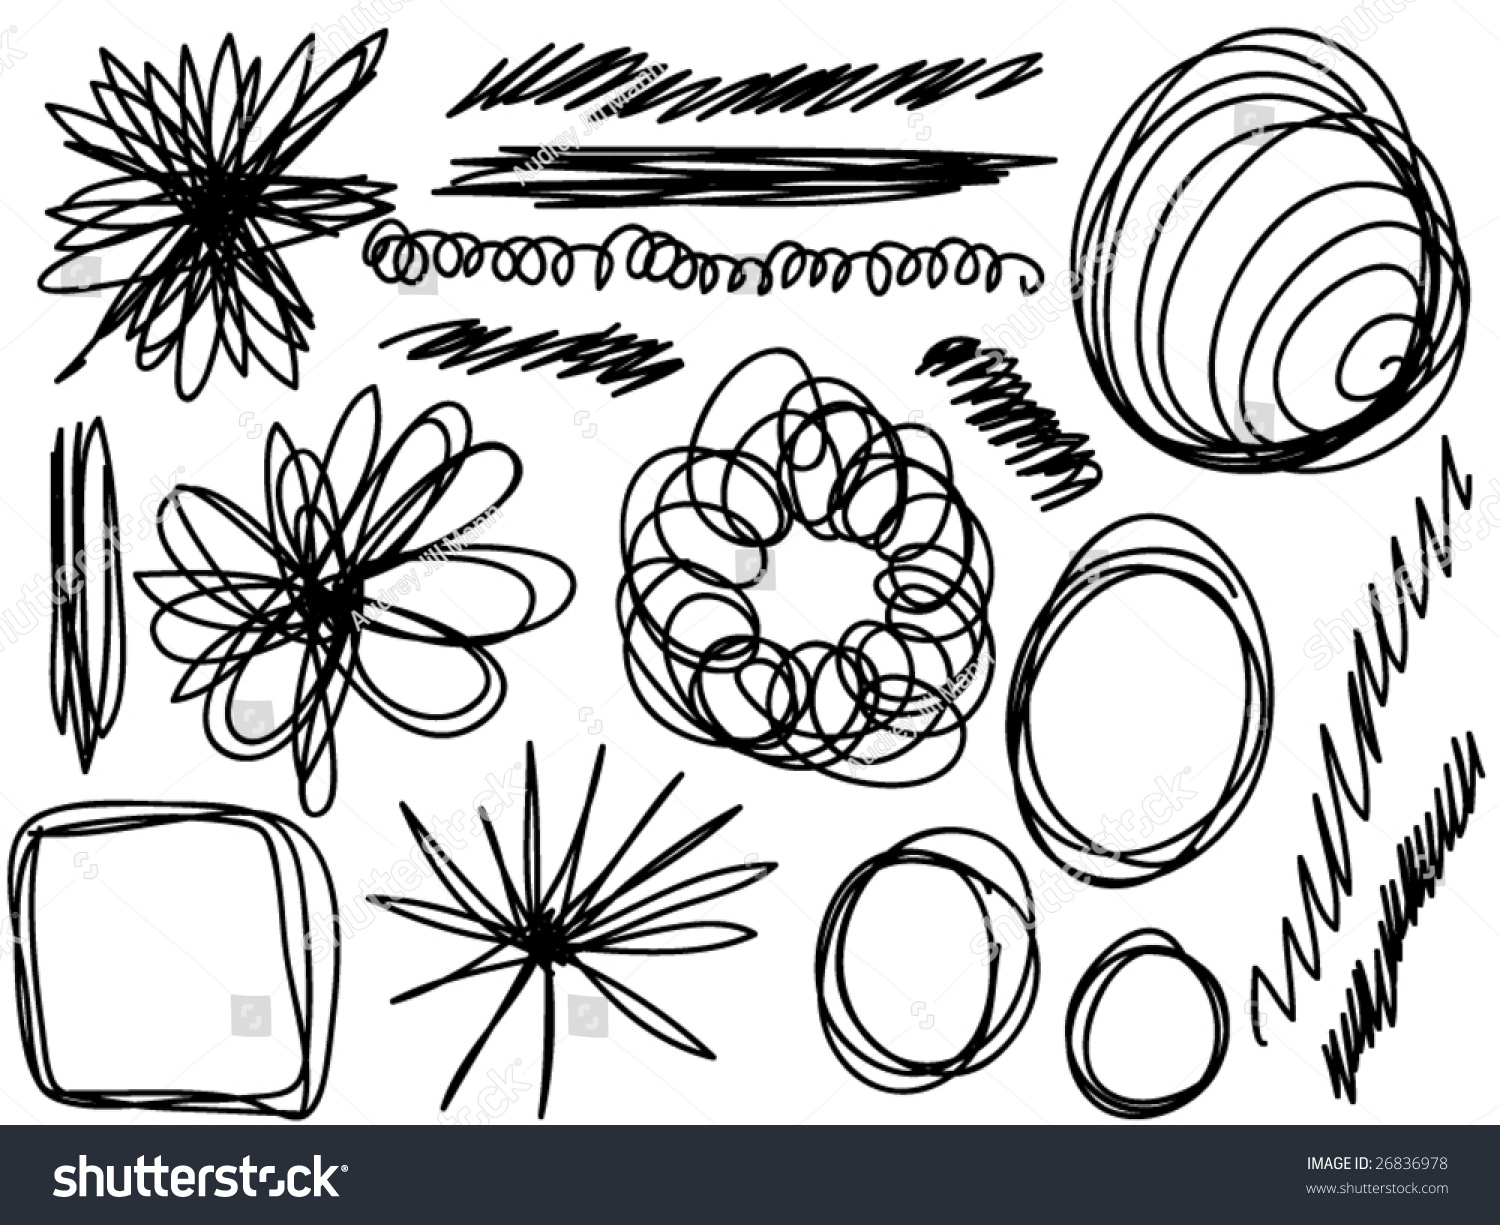 stock vector collection of various shapes of scribbles 26836978 collection various shapes scribbles stock vector 26836978 on scribbles coloring book